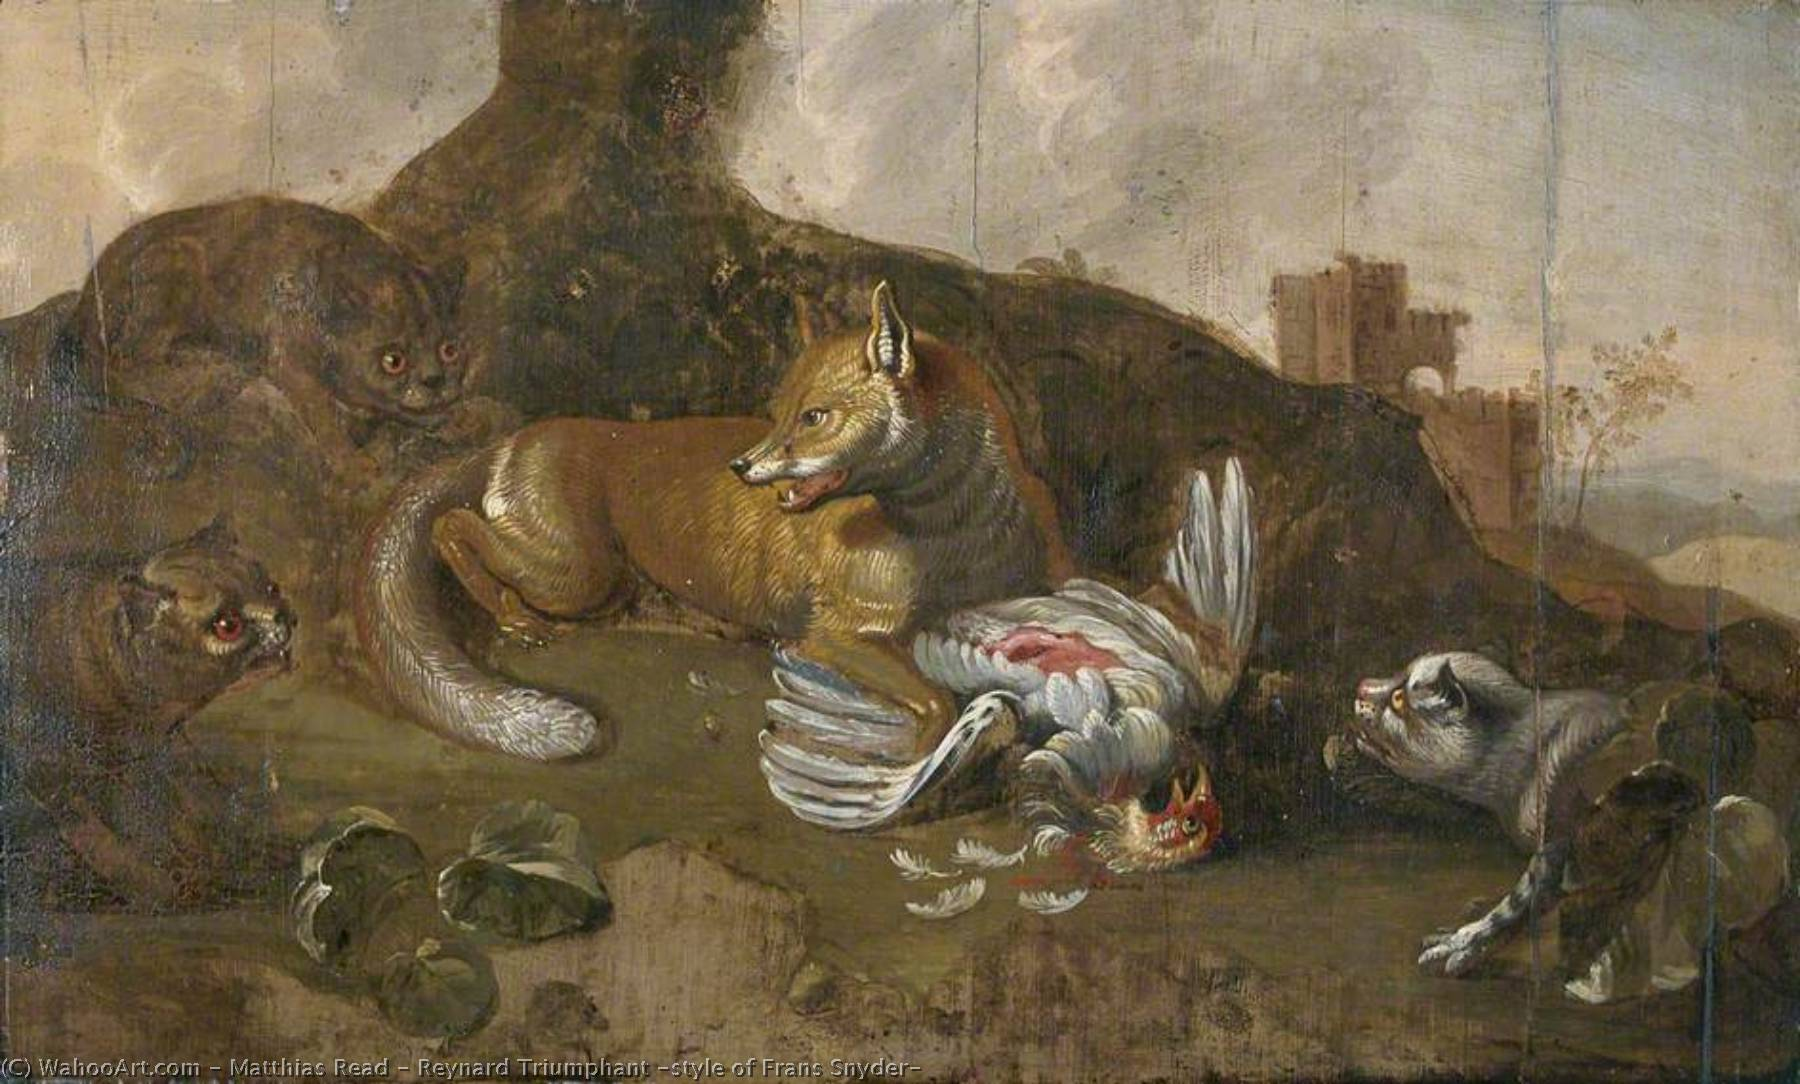 Reynard Triumphant (style of Frans Snyder), Oil On Panel by Matthias Read